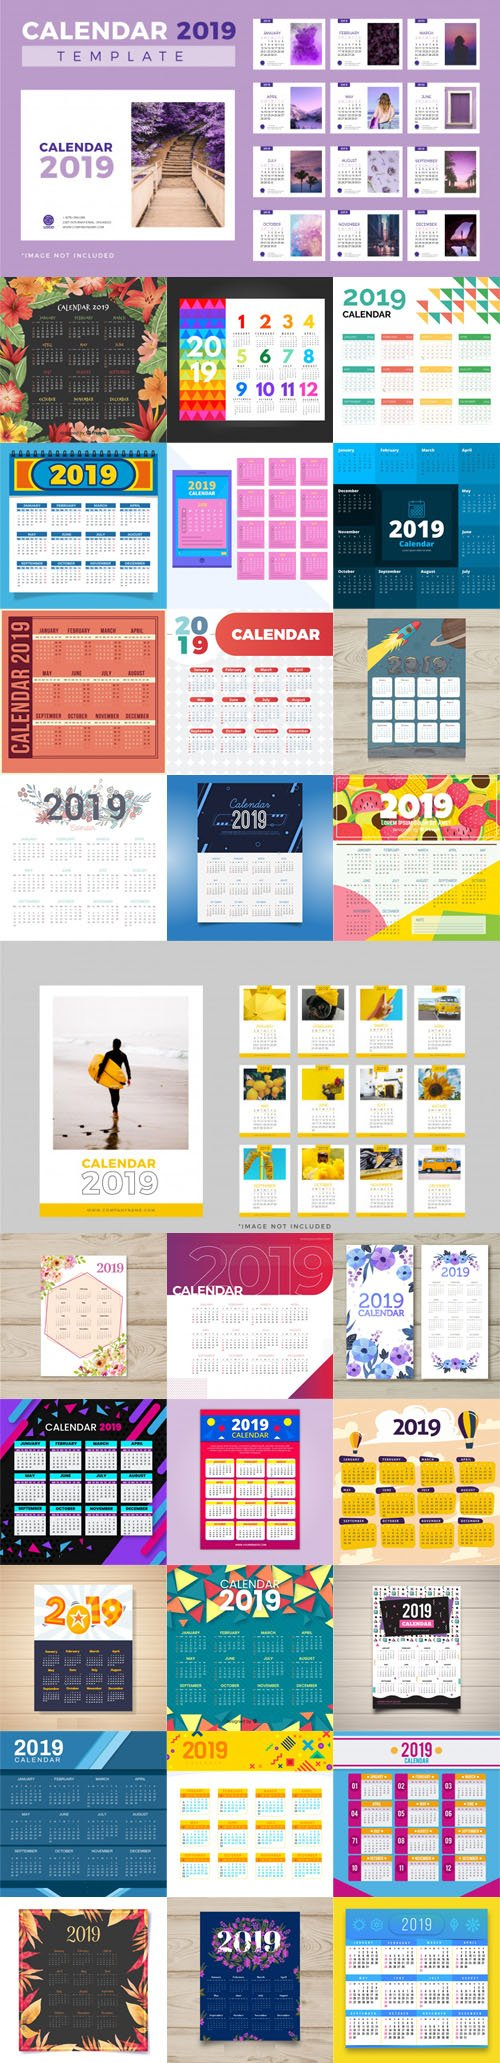 2019 Calendar Vector Templates Collection 1 [30 Calendars]